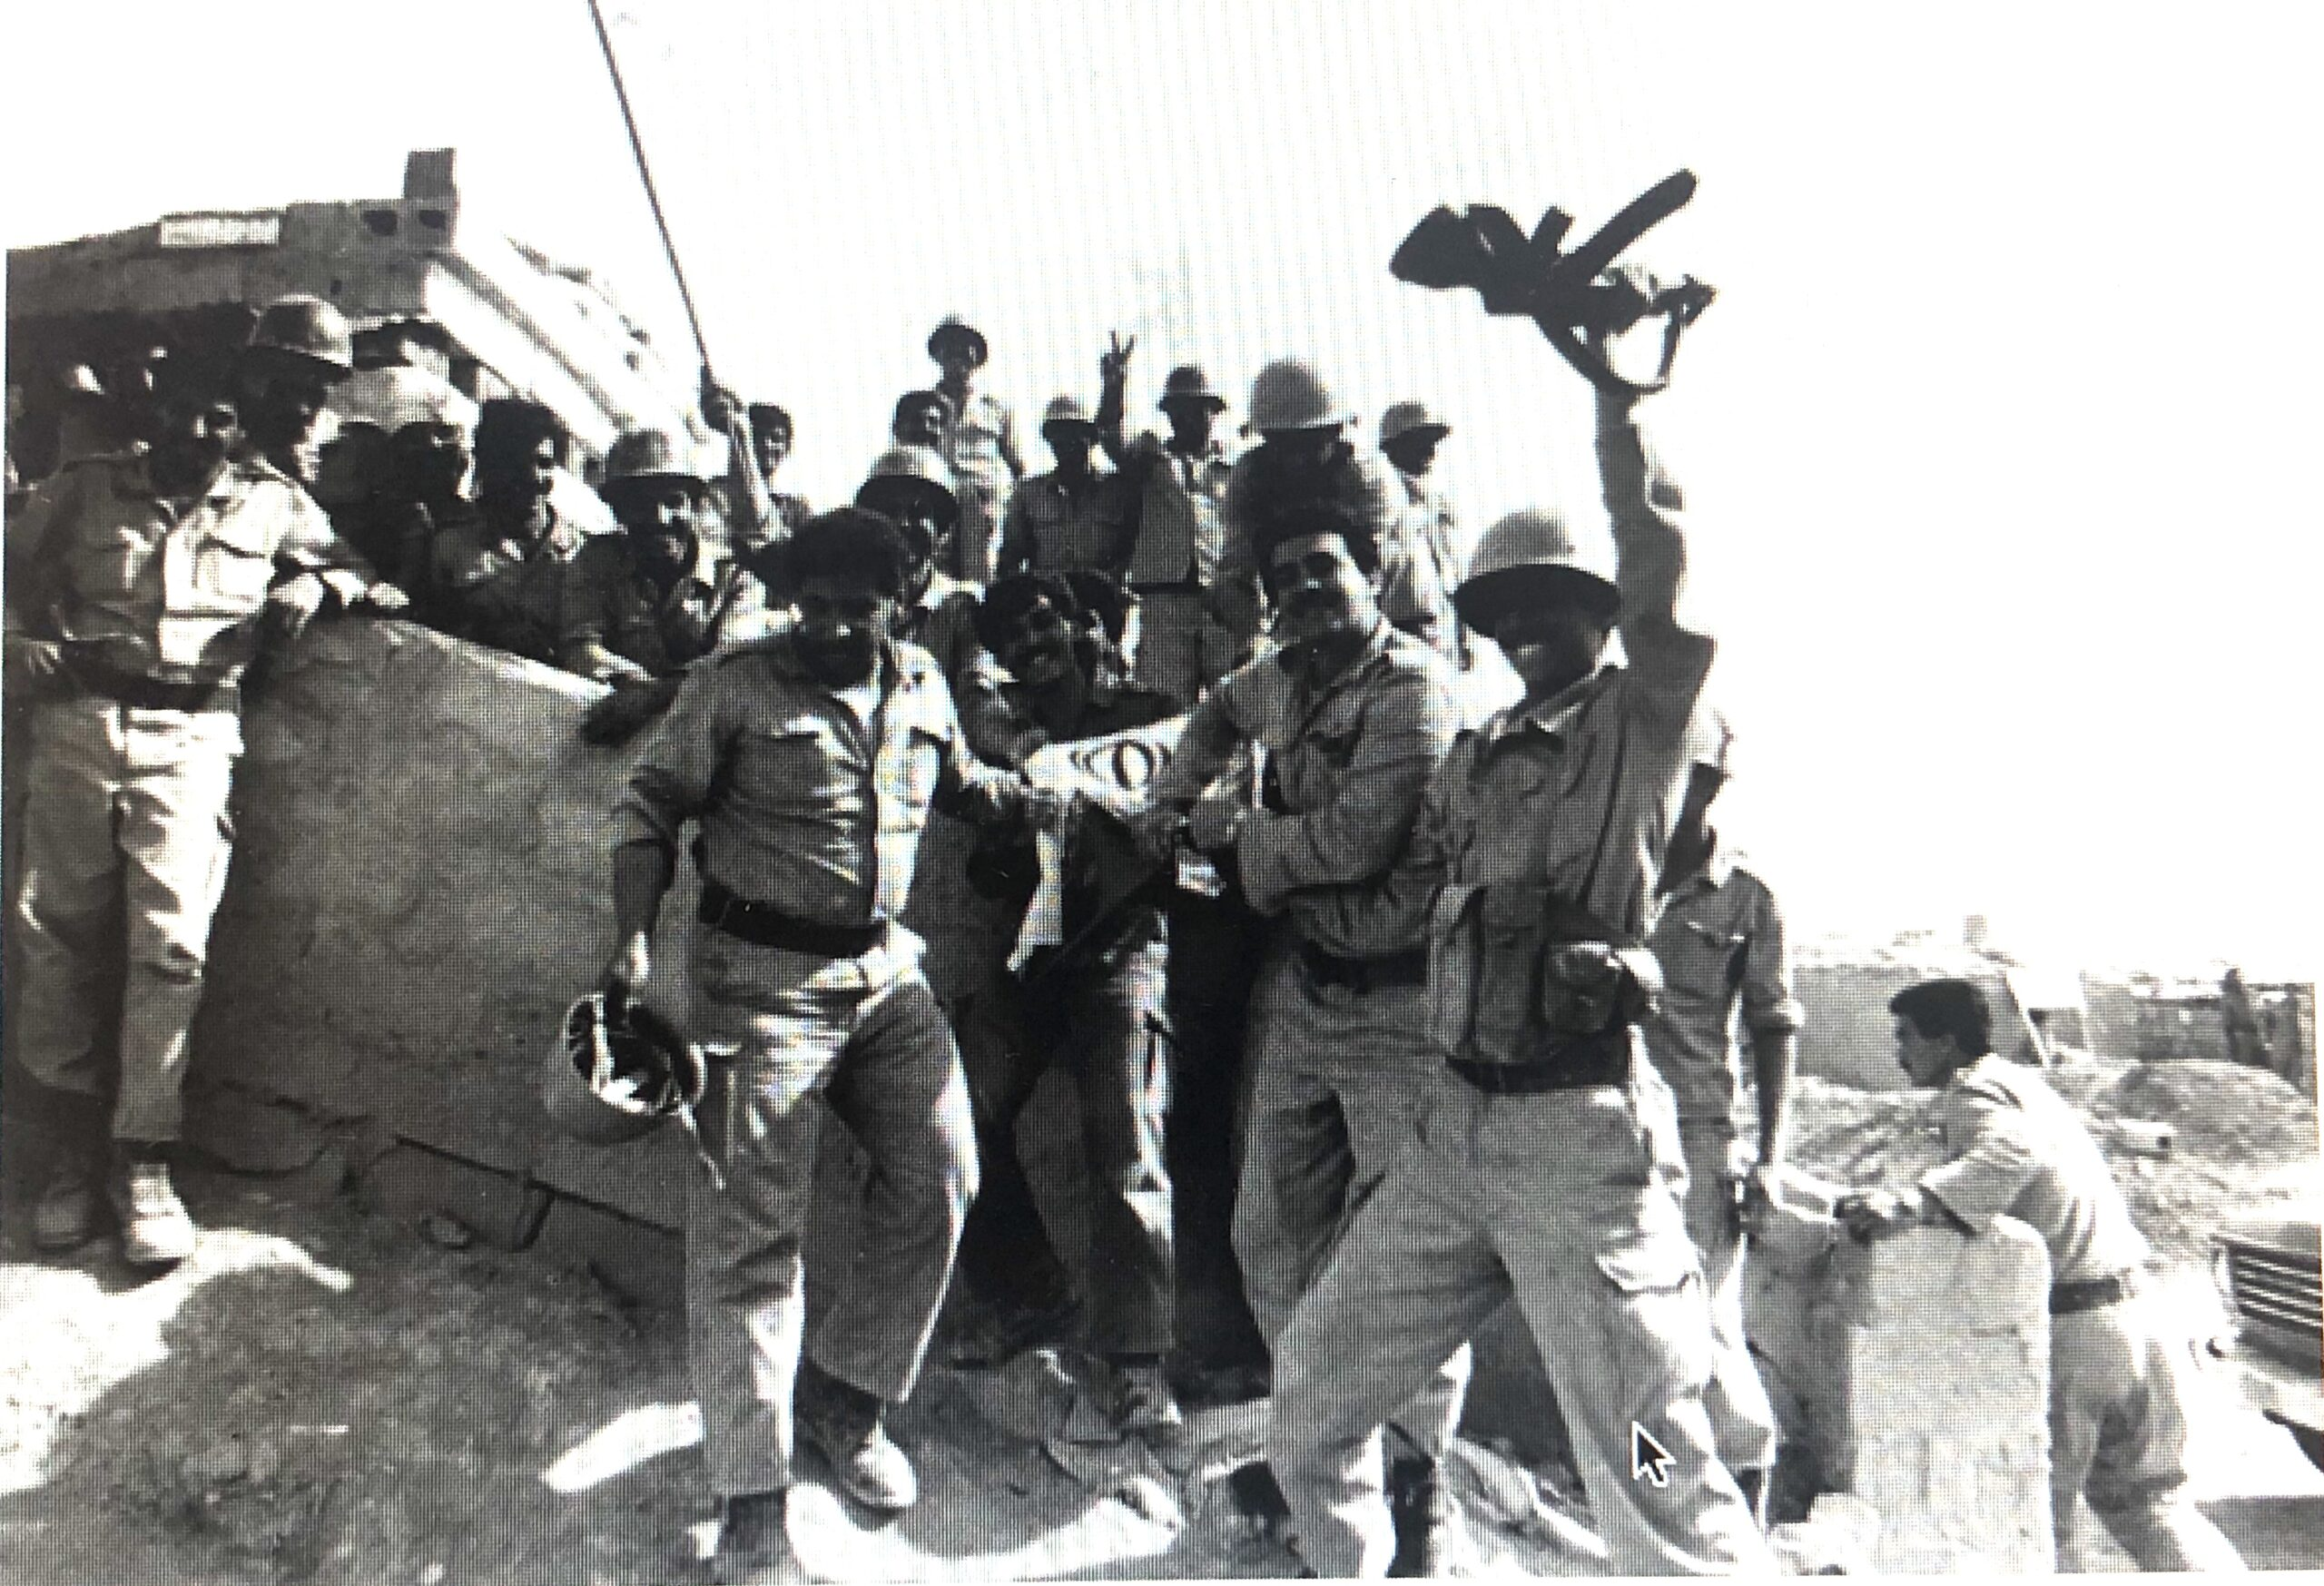 Iraqi soldiers celebrate after capturing Iranian cities